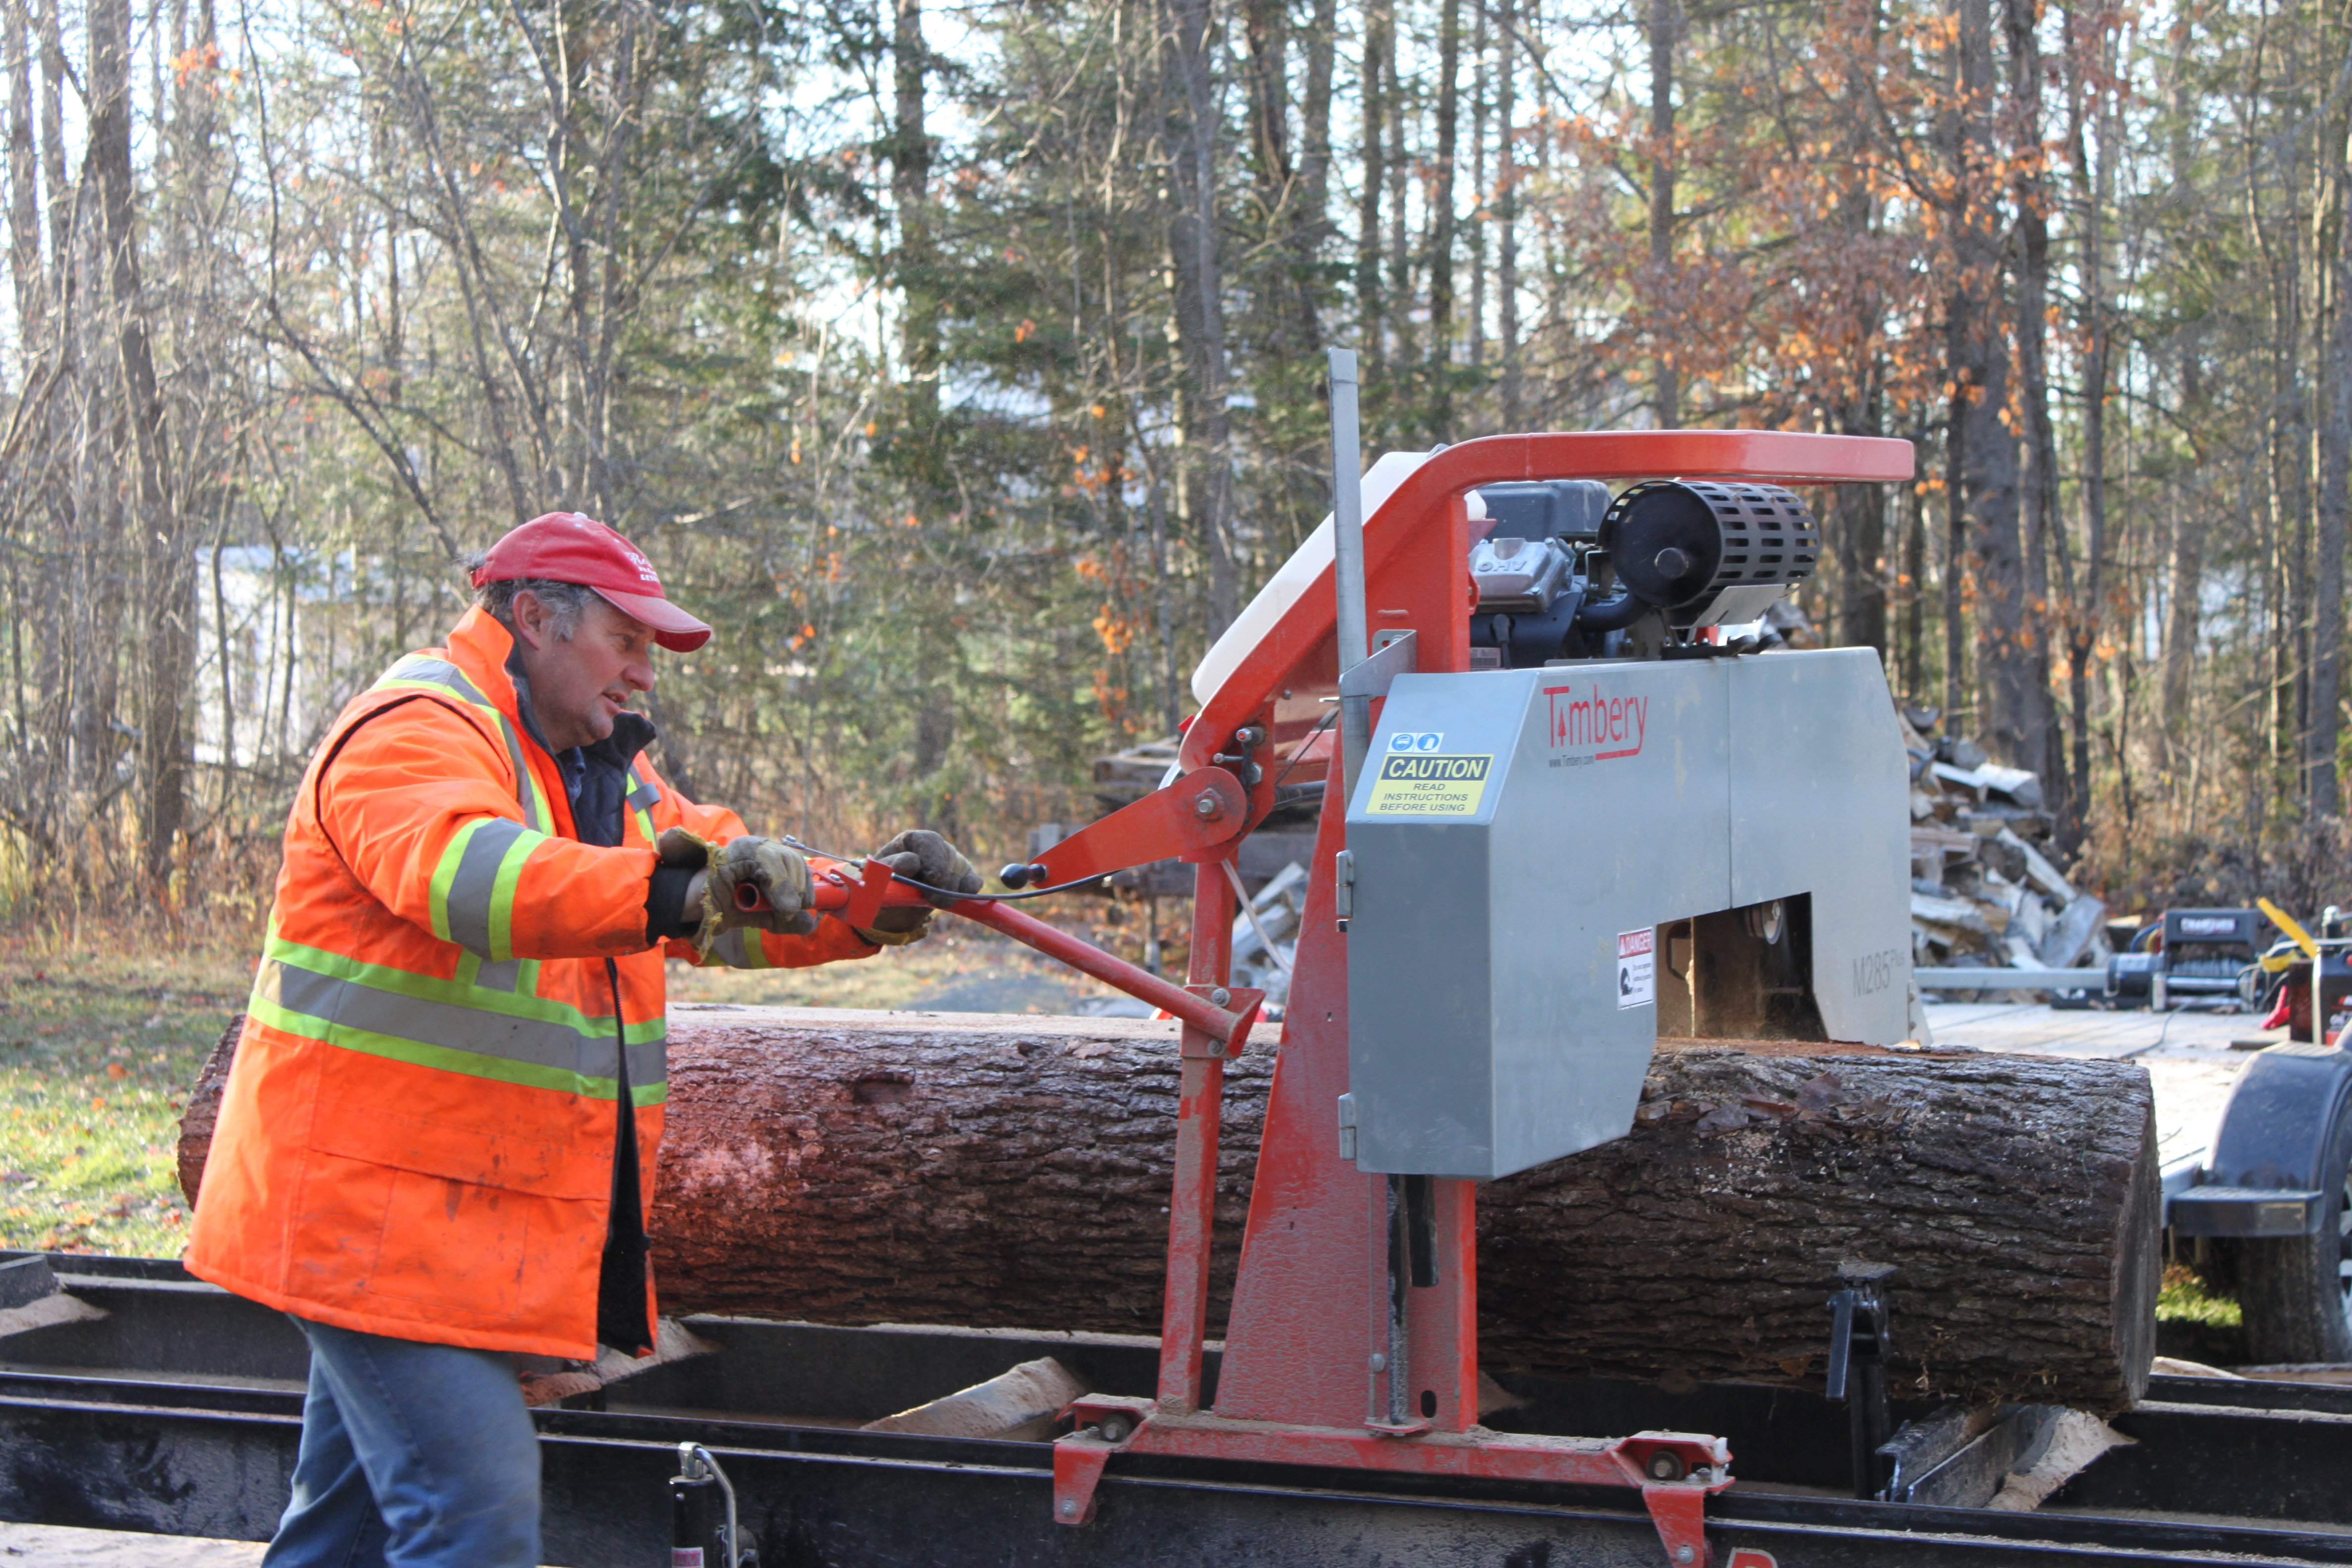 Bruce McEwen sawing on a Timbery Portable Sawmill